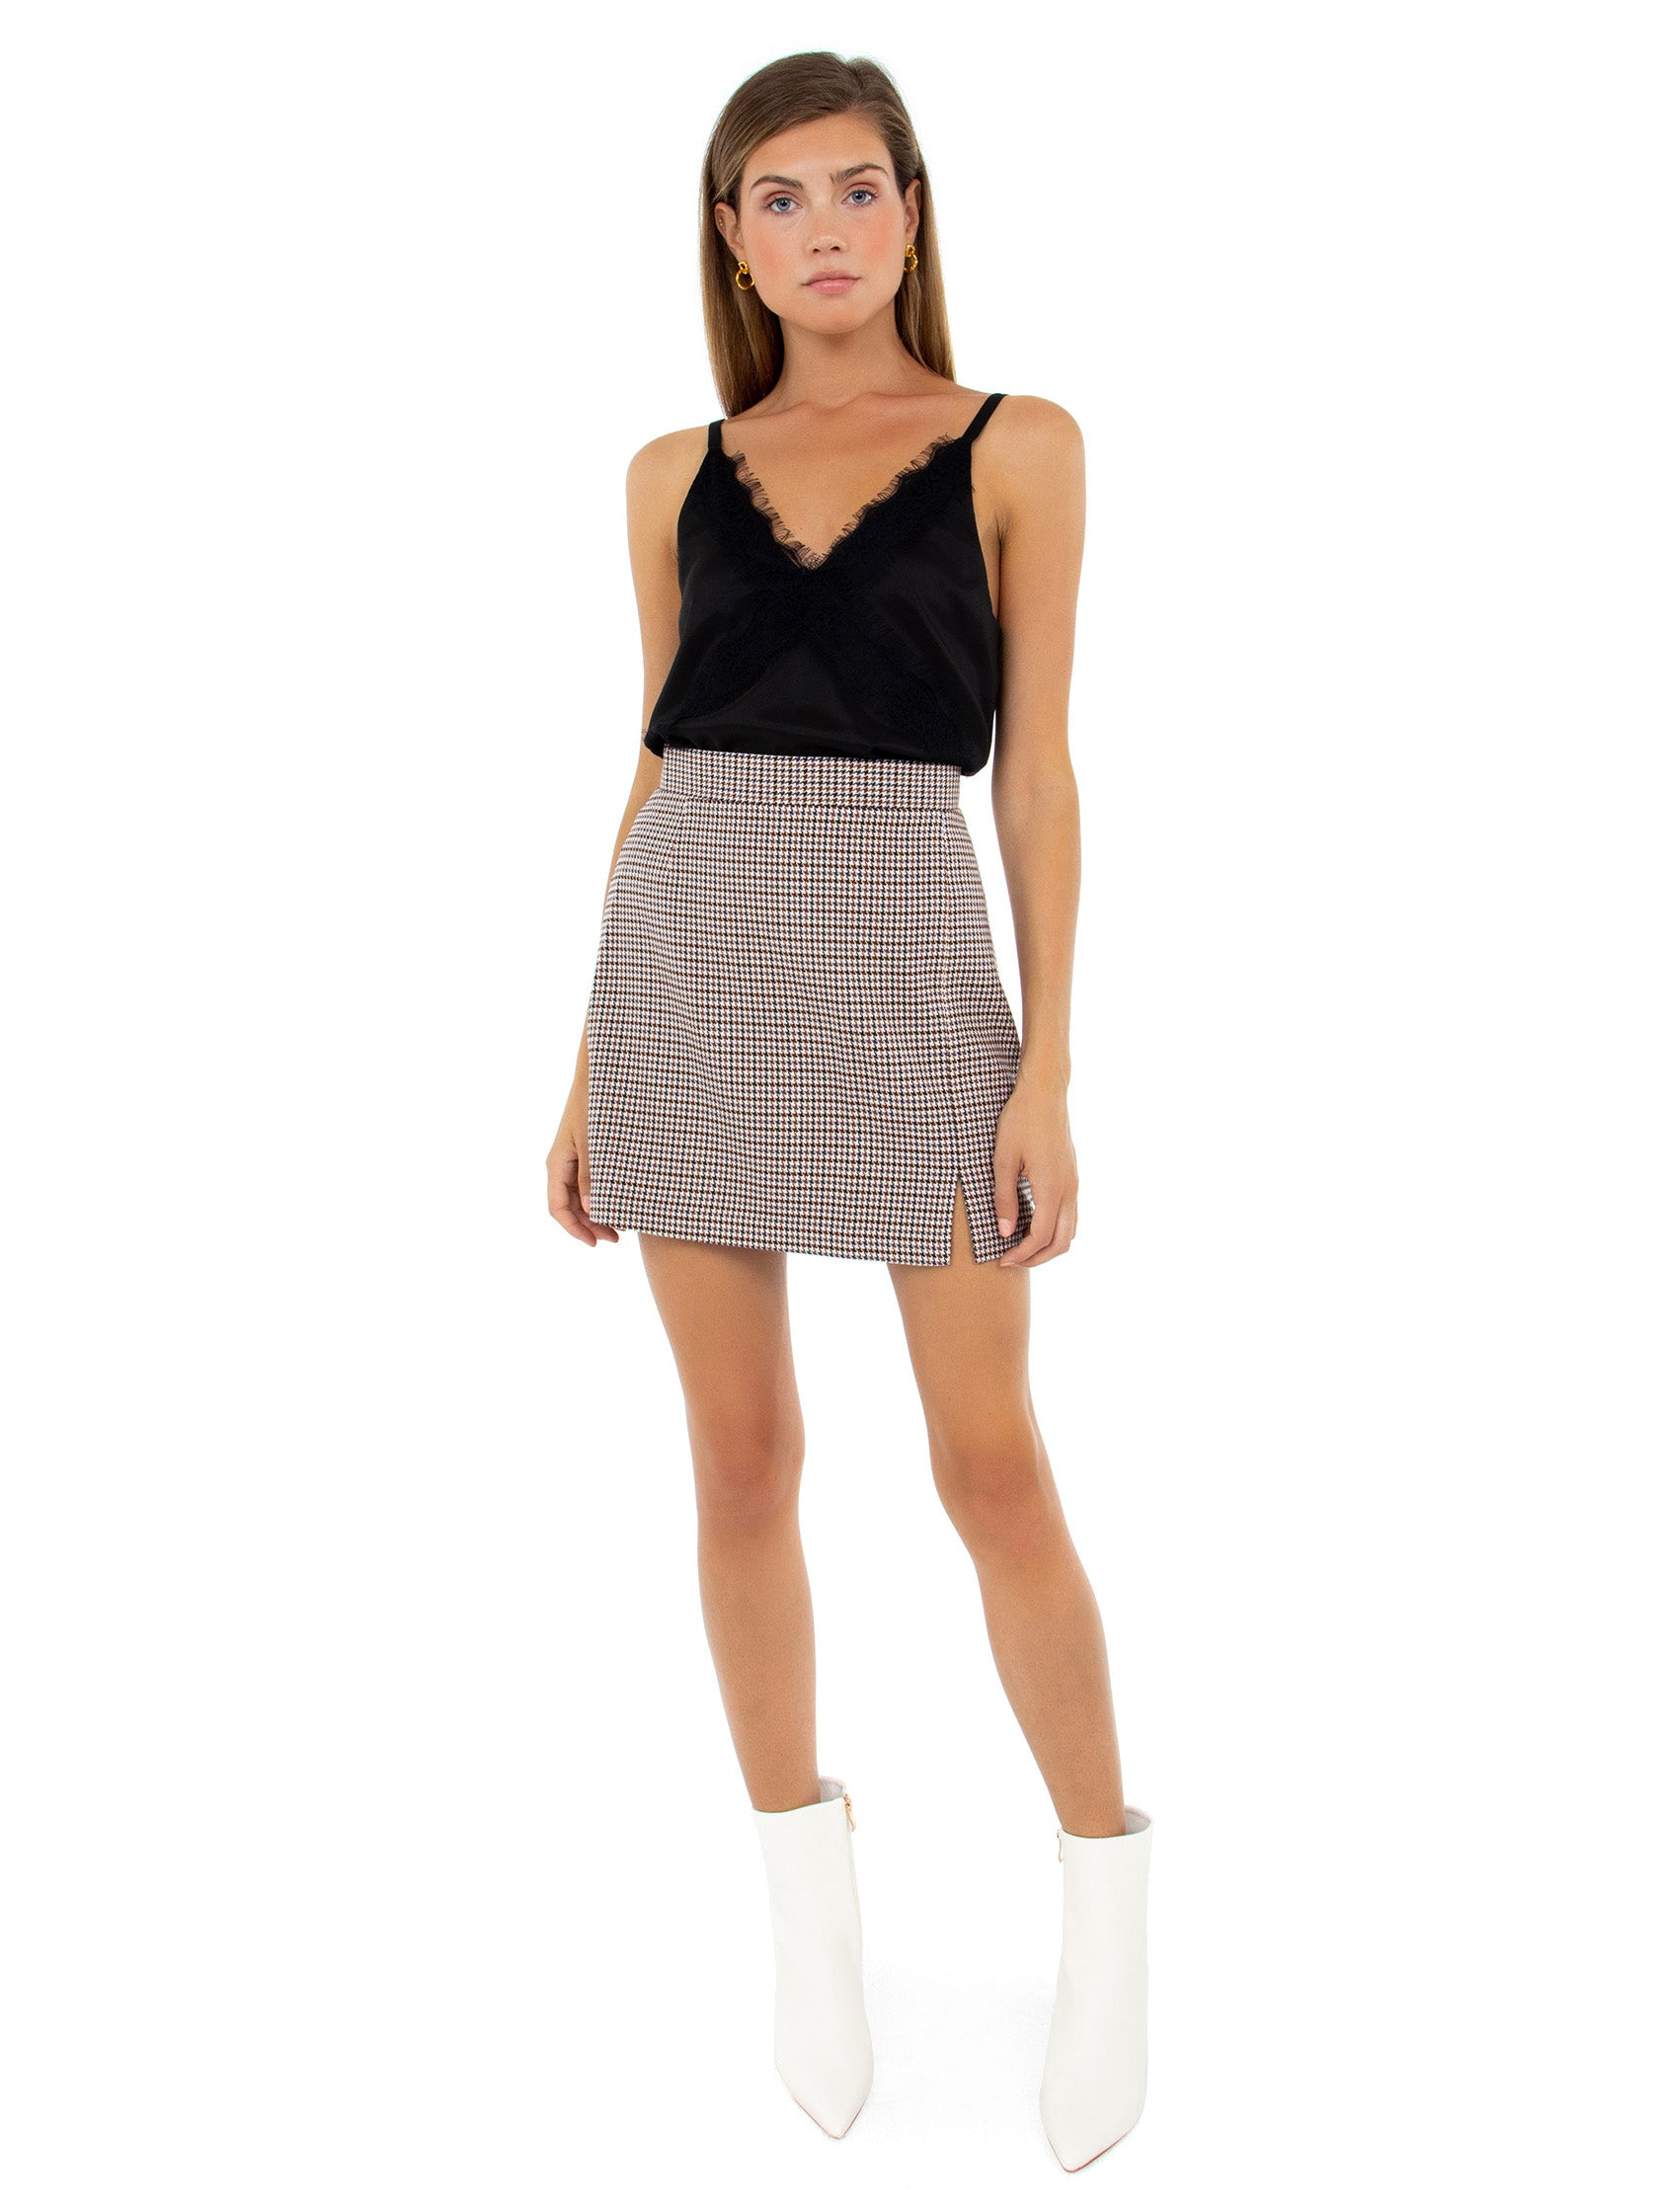 Girl wearing a skirt rental from BB Dakota called Check It Out Skirt